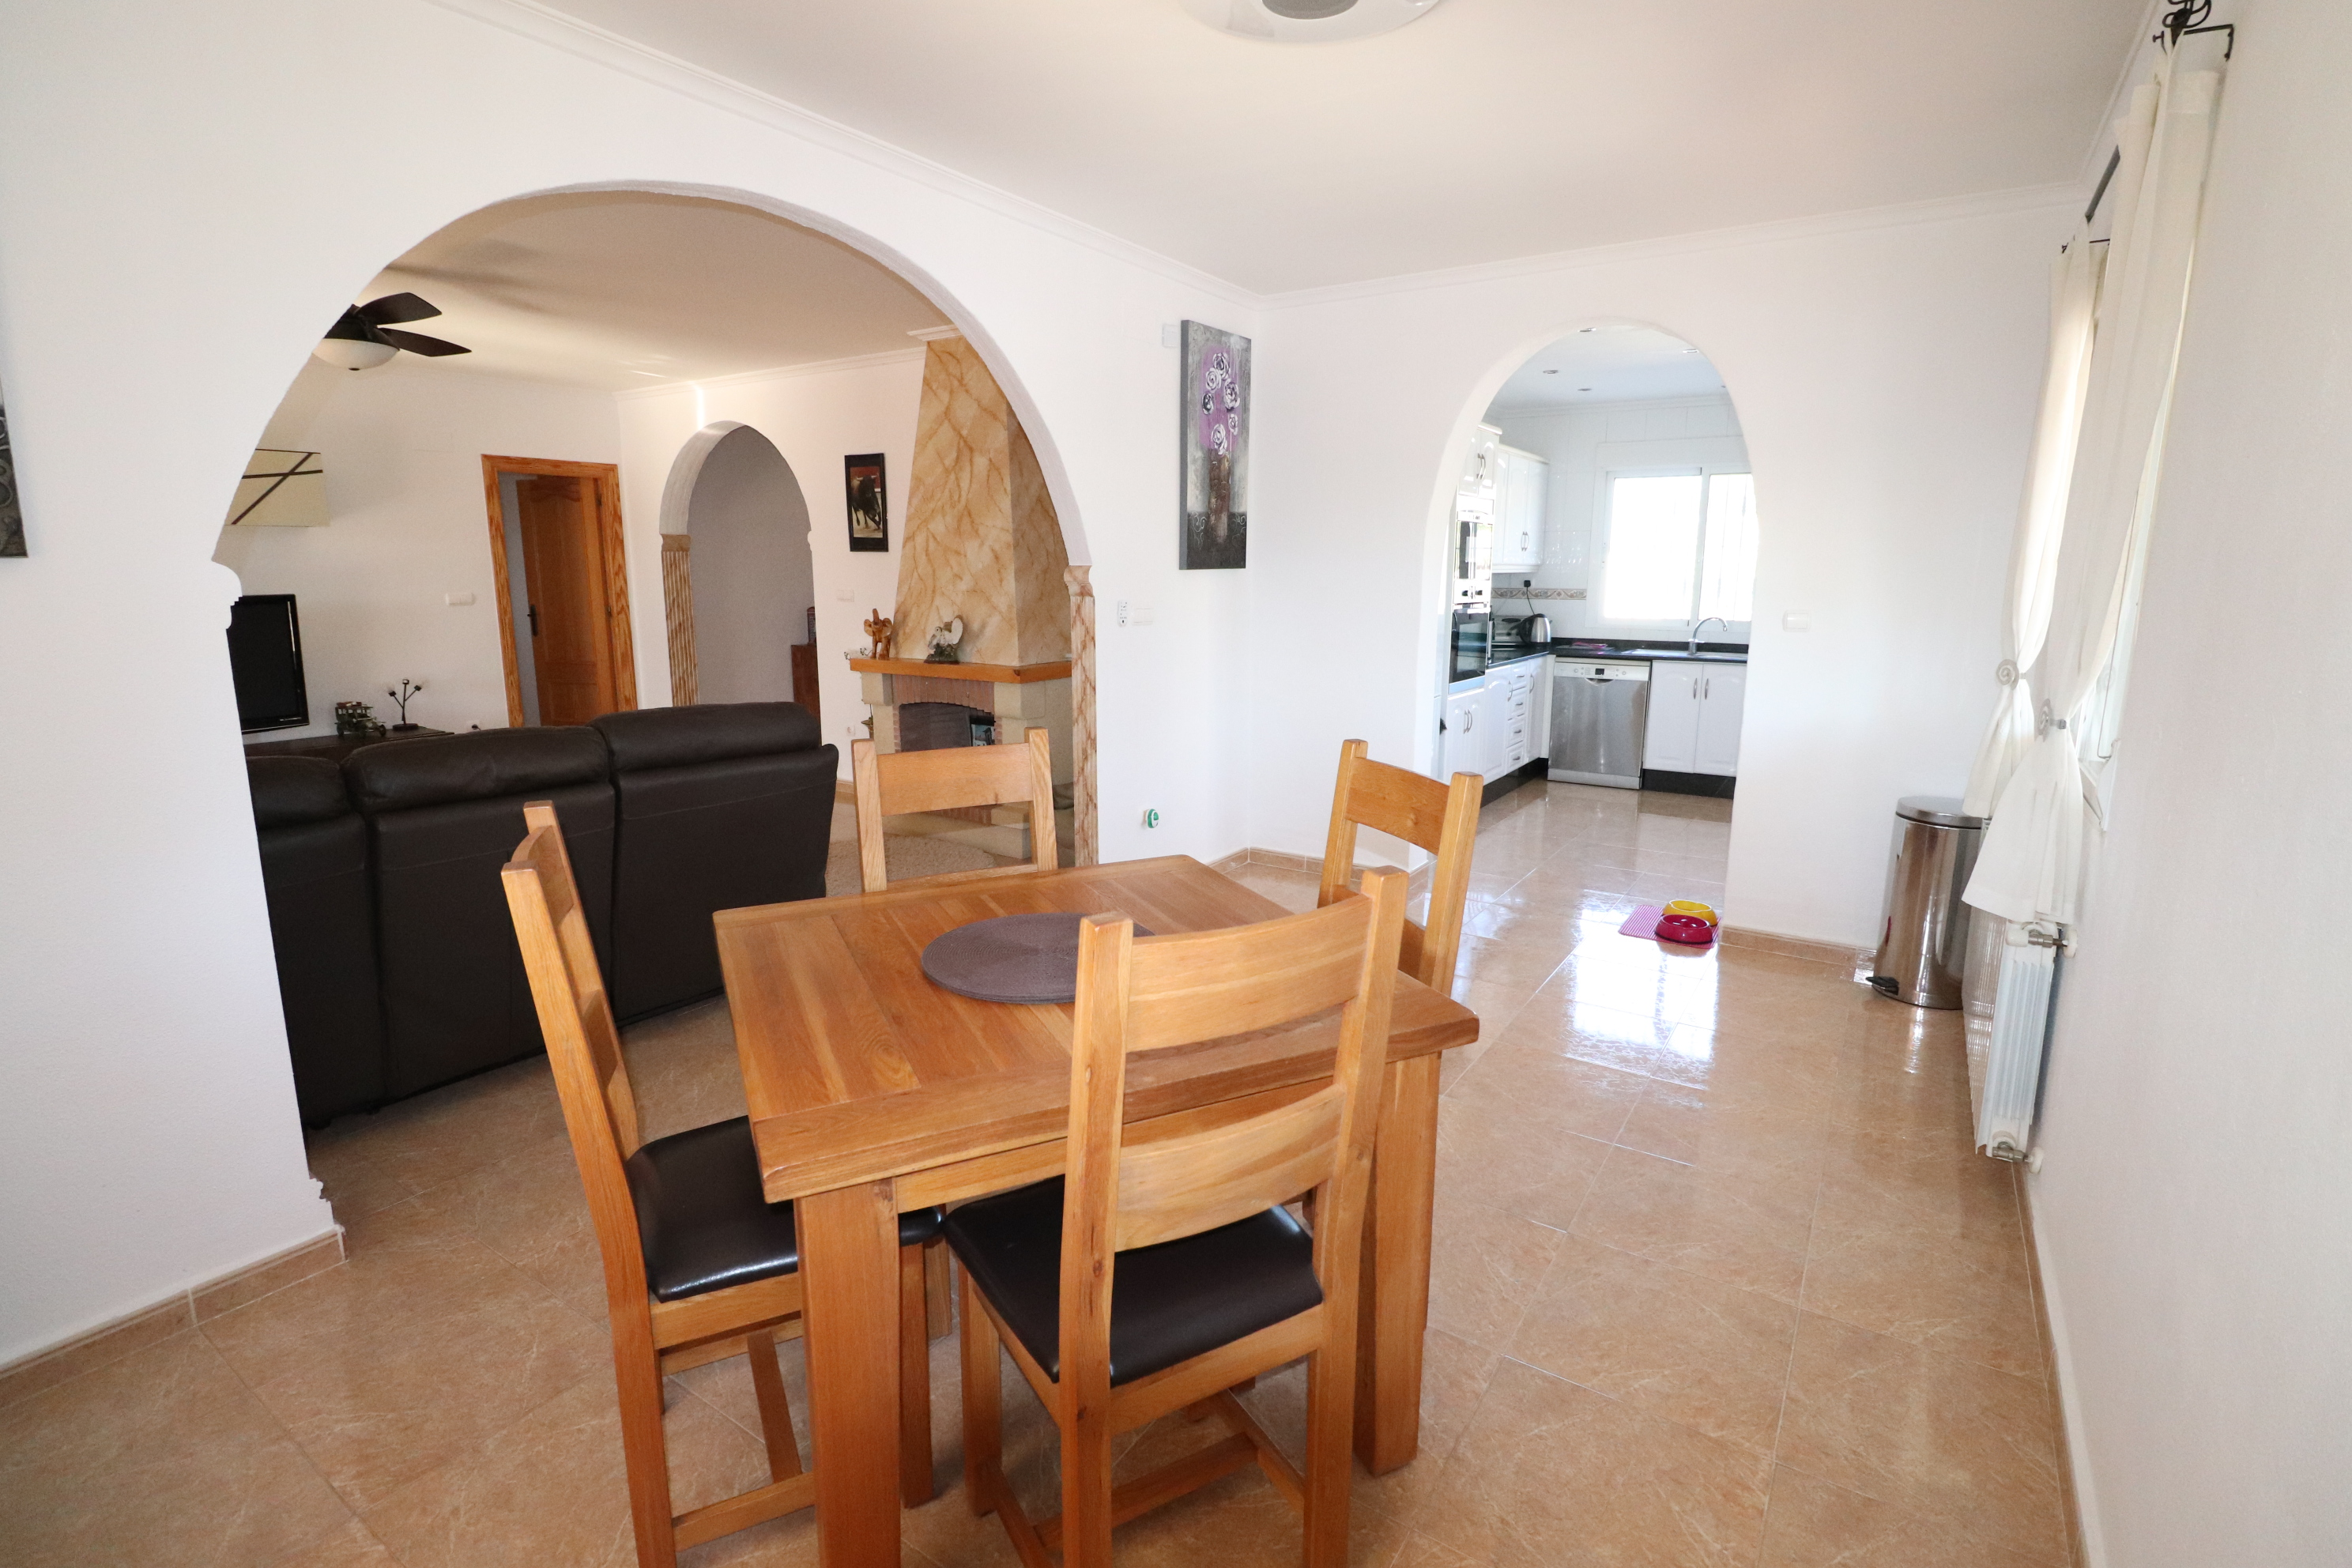 3 bed Country Property in Hondon de Los Frailes image 6